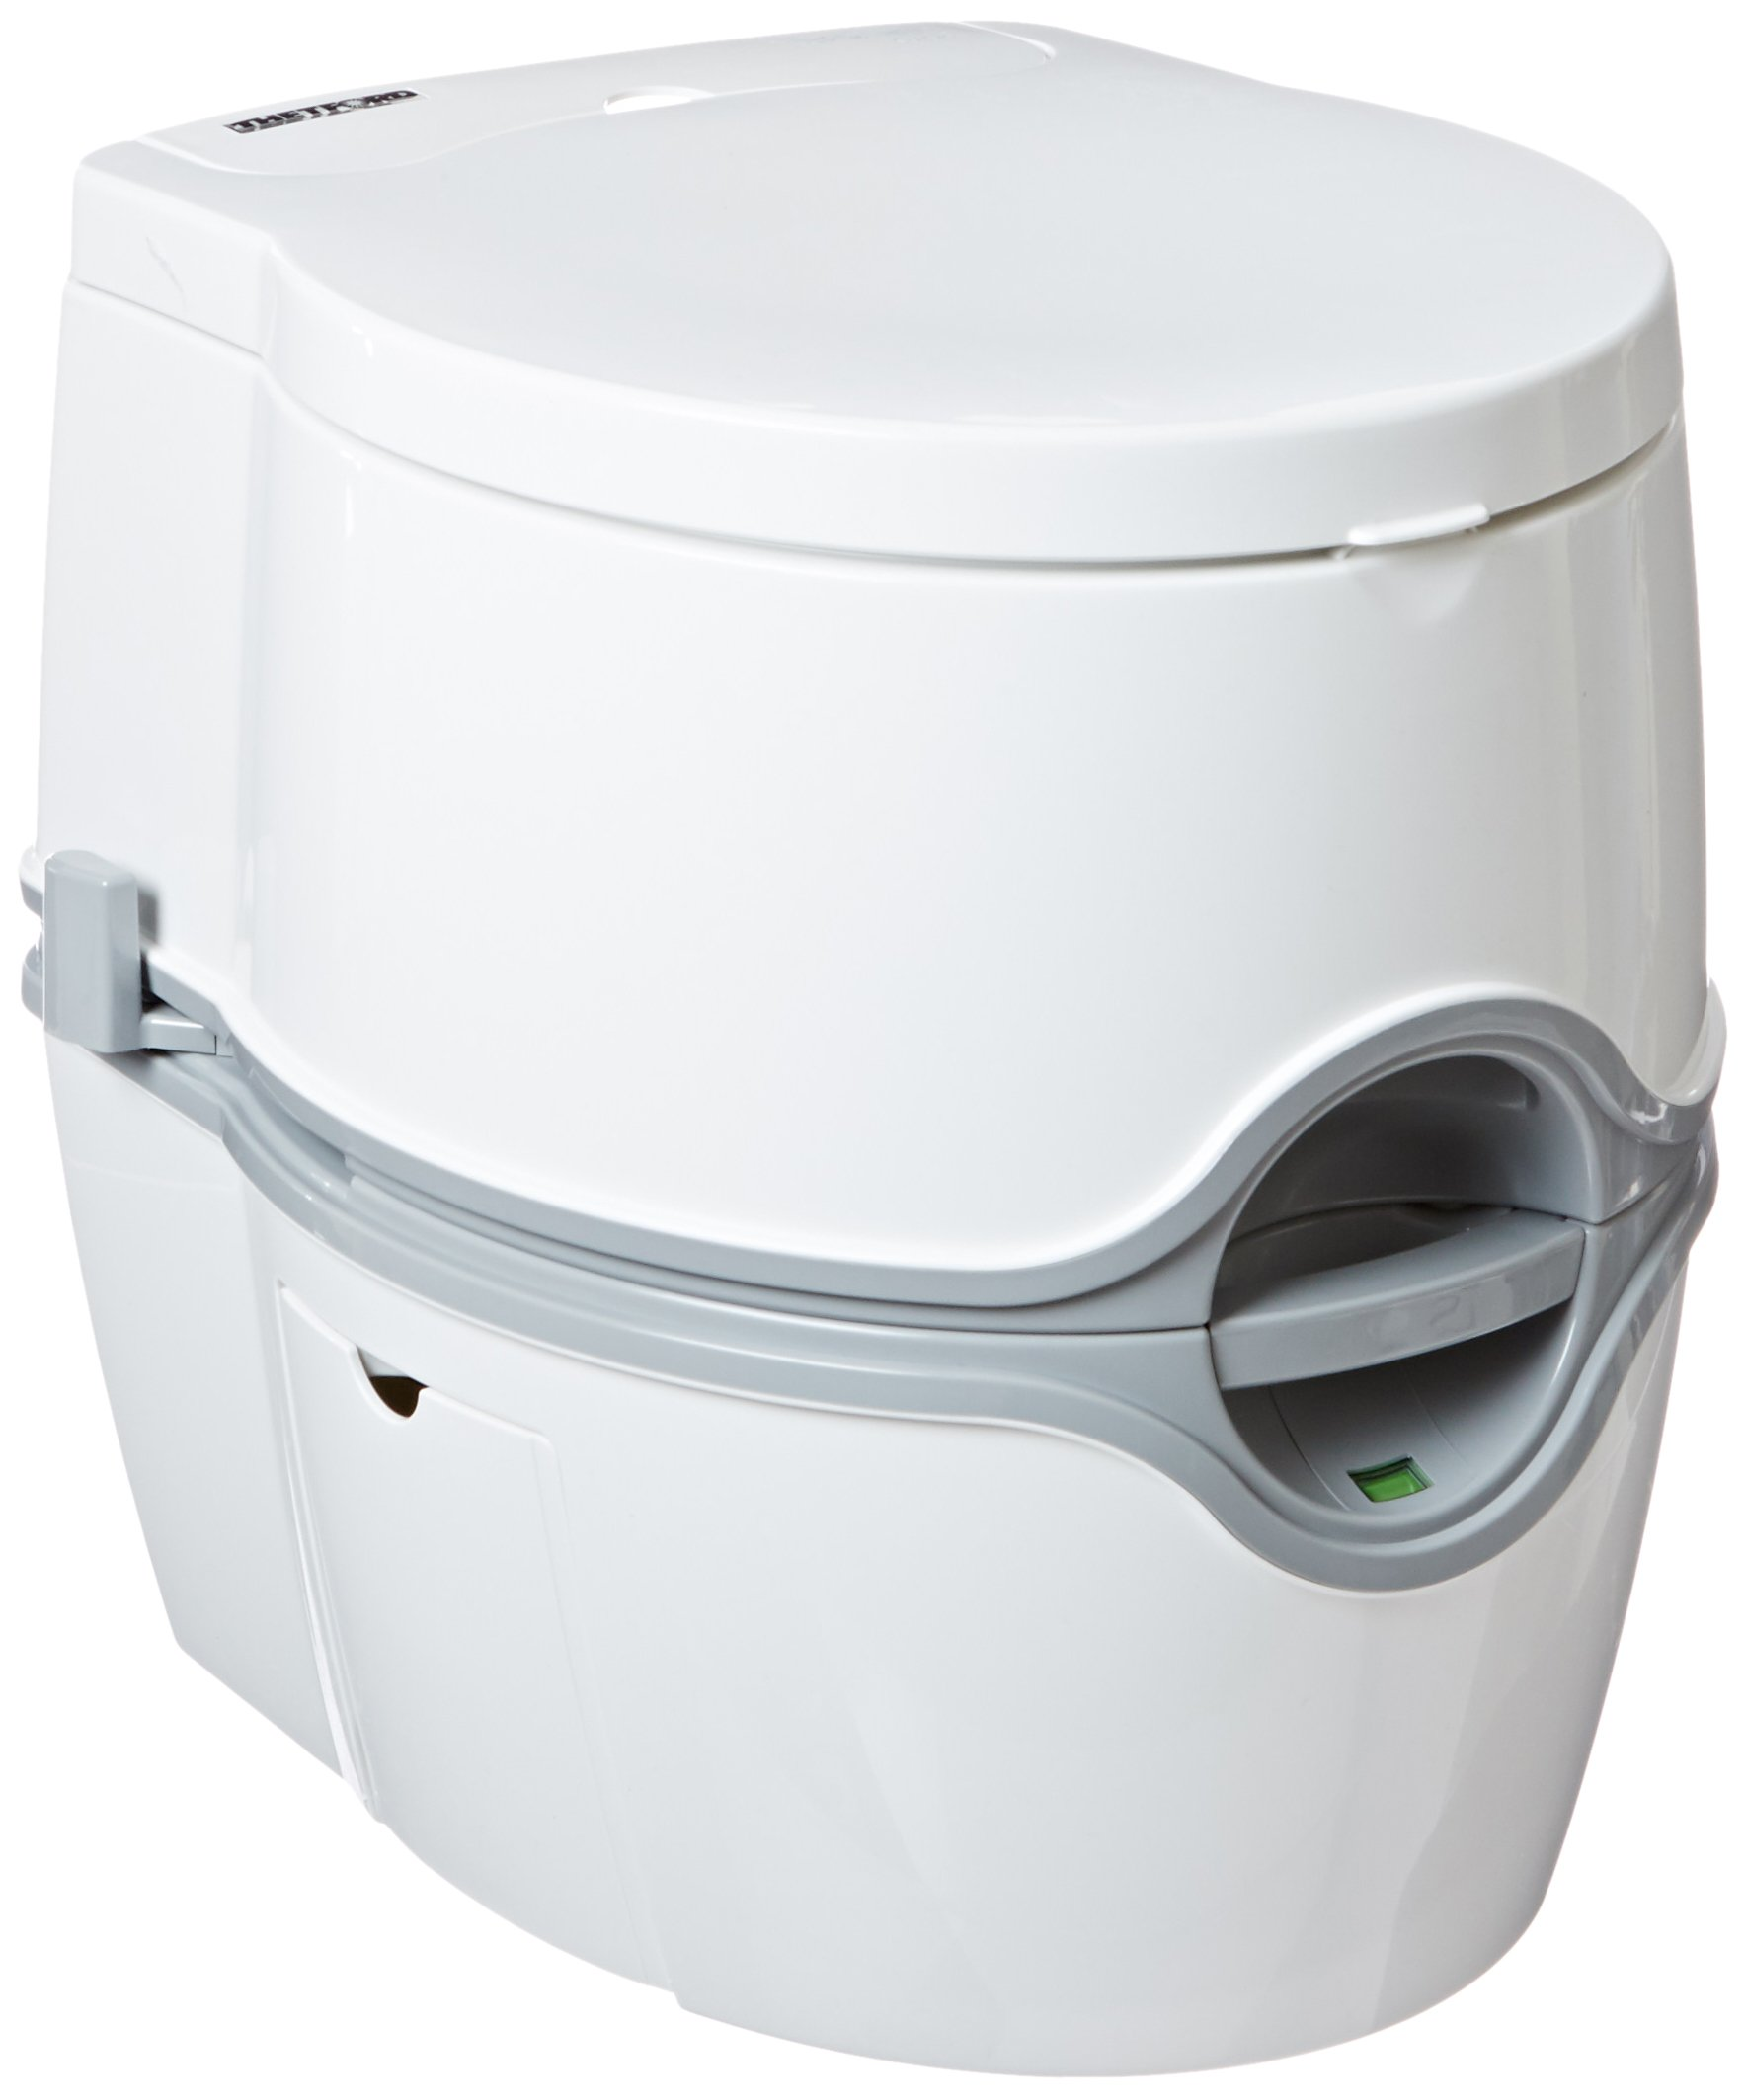 Thetford 5.5 gallon 92360550E Curve Portable Toilet